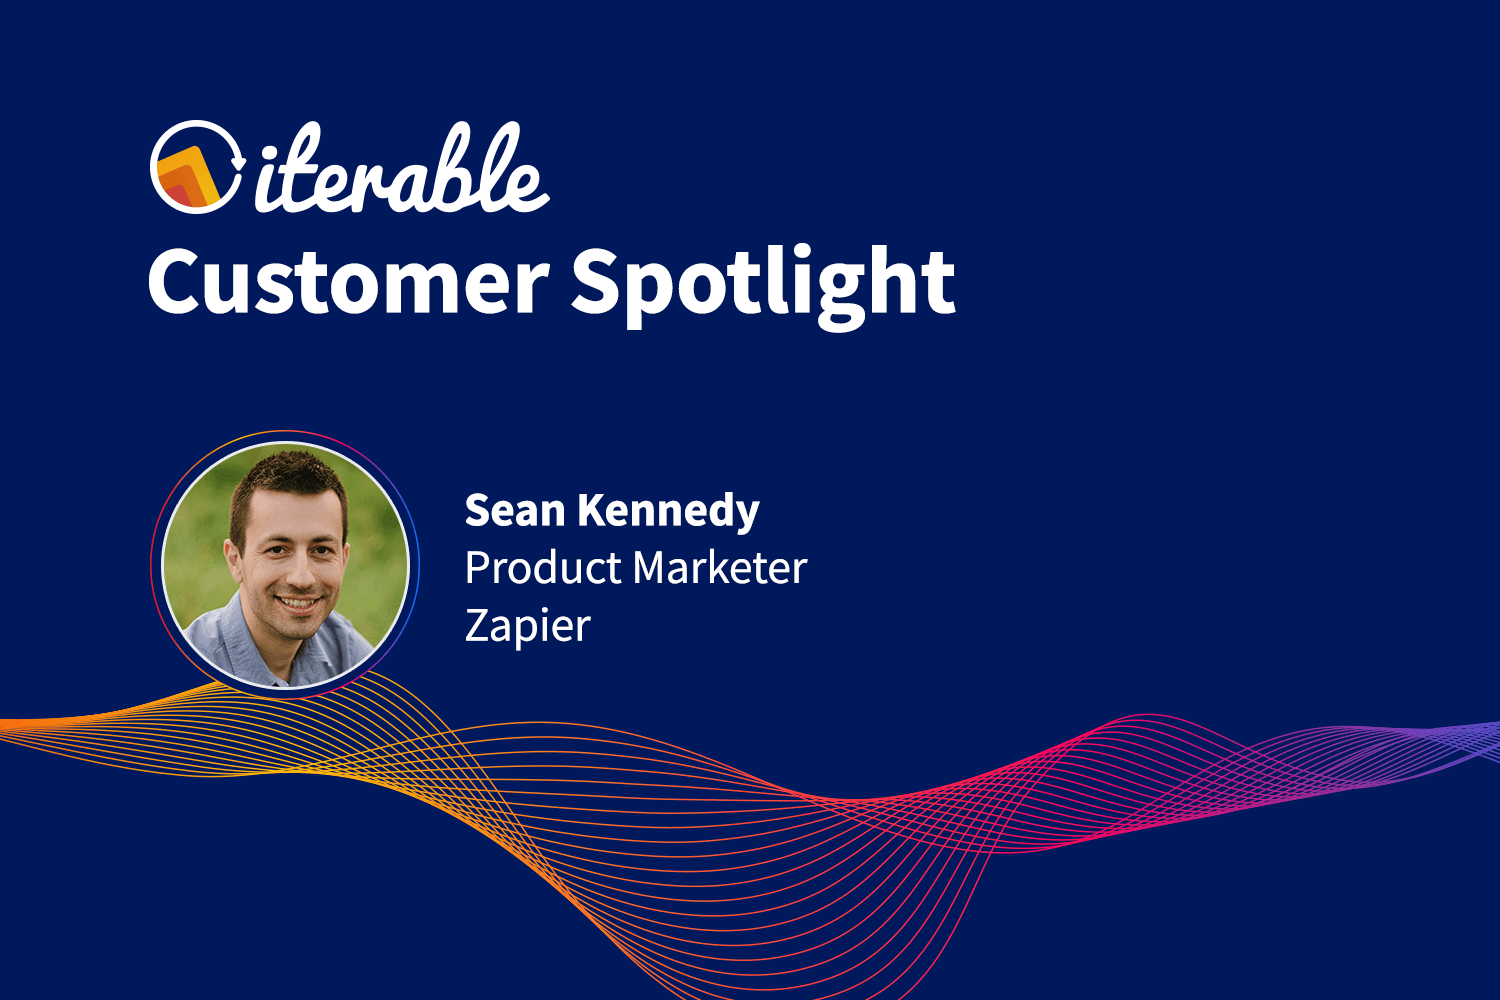 Iterable Customer Spotlight: Sean Kennedy